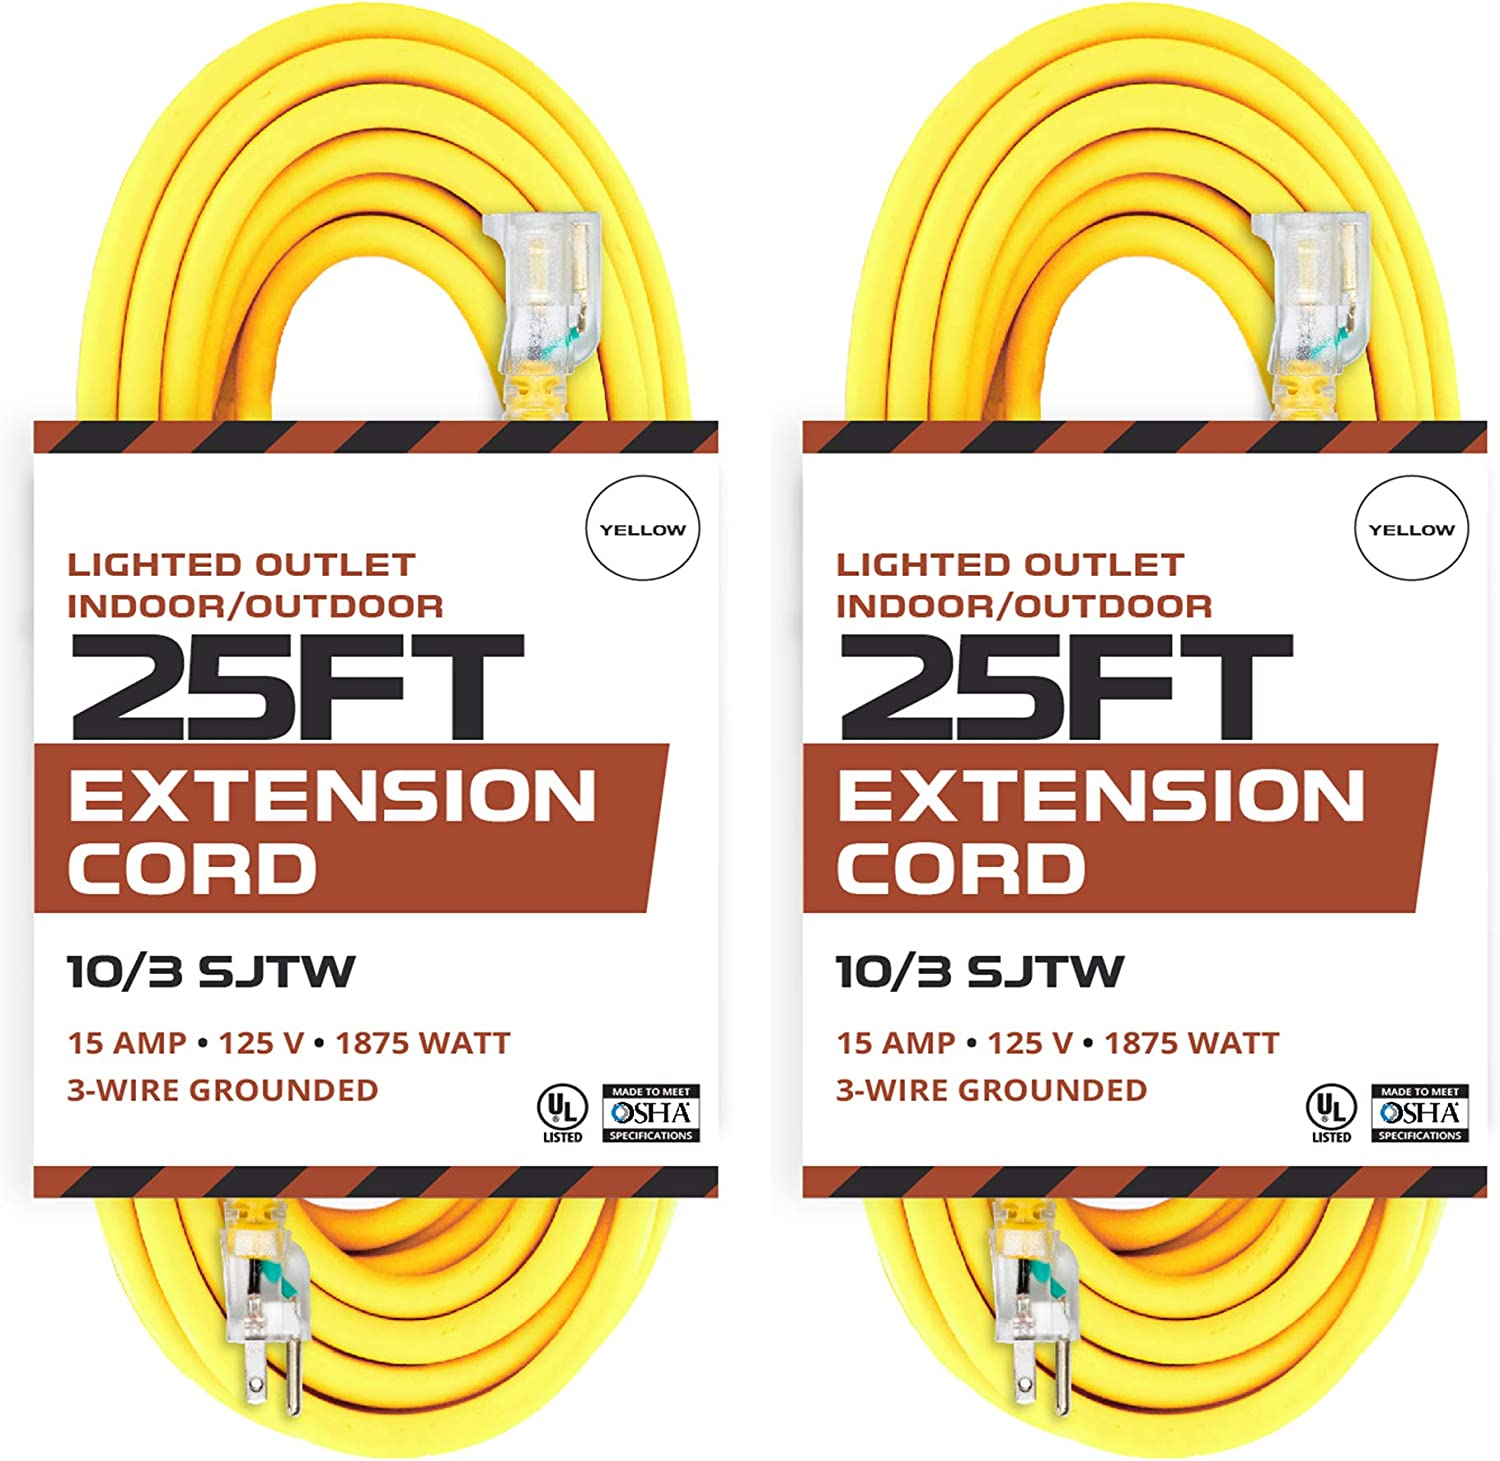 2 Pack of 25 Foot Lighted Outdoor Extension Cord - 10/3 SJTW Yellow 10 Gauge Extension Cable with 3 Prong Grounded Plug for Safety - Great for Garden and Major Appliances